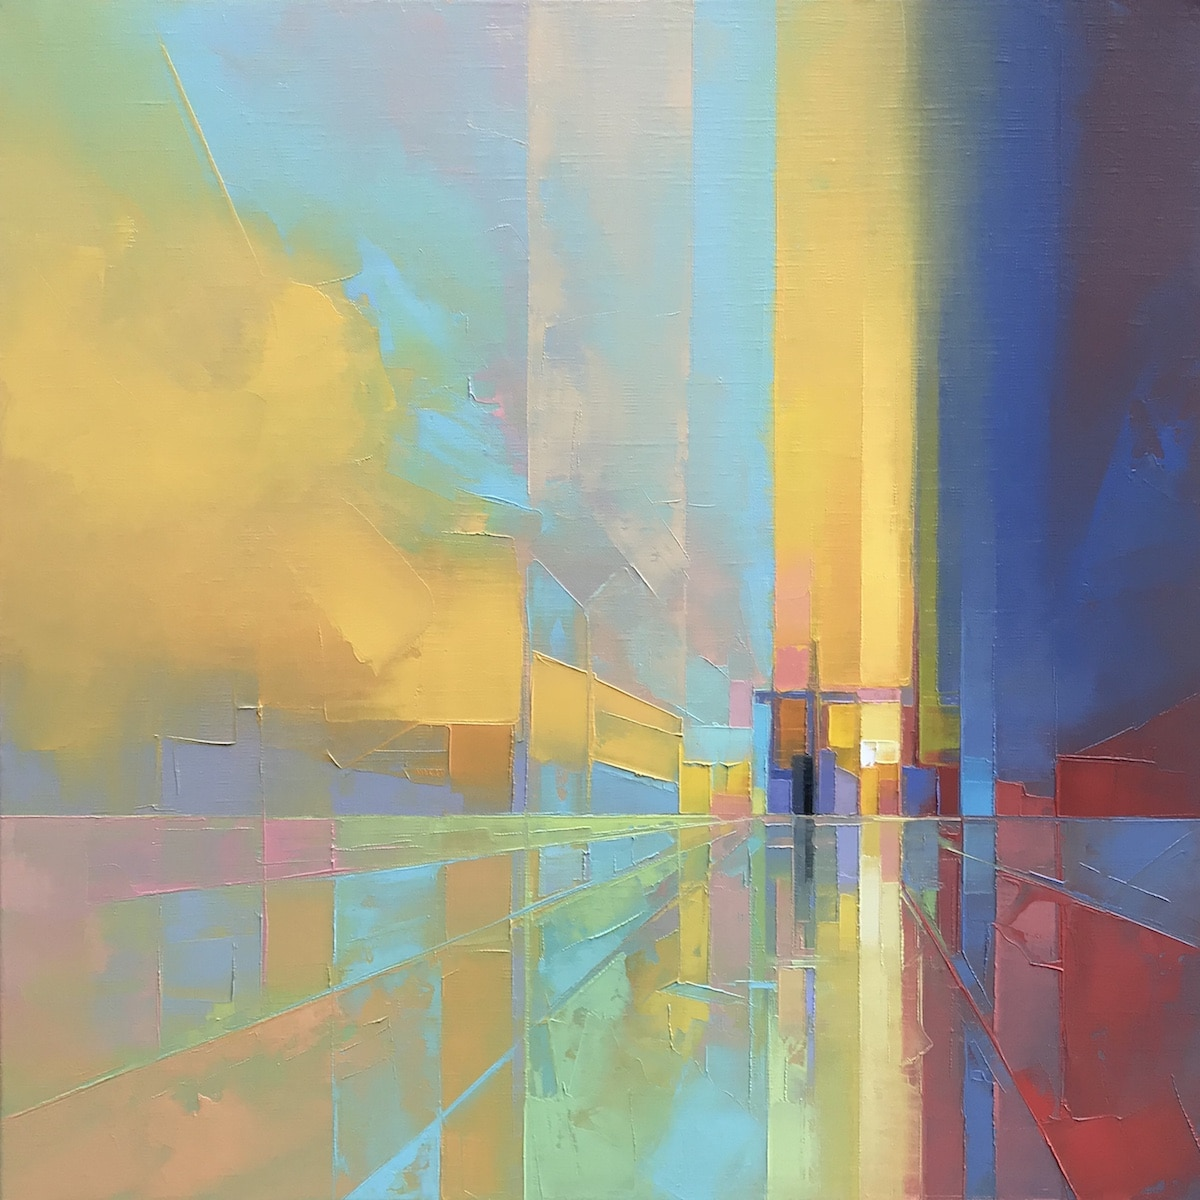 Abstract Palette Knife Paintings by Jason Anderson